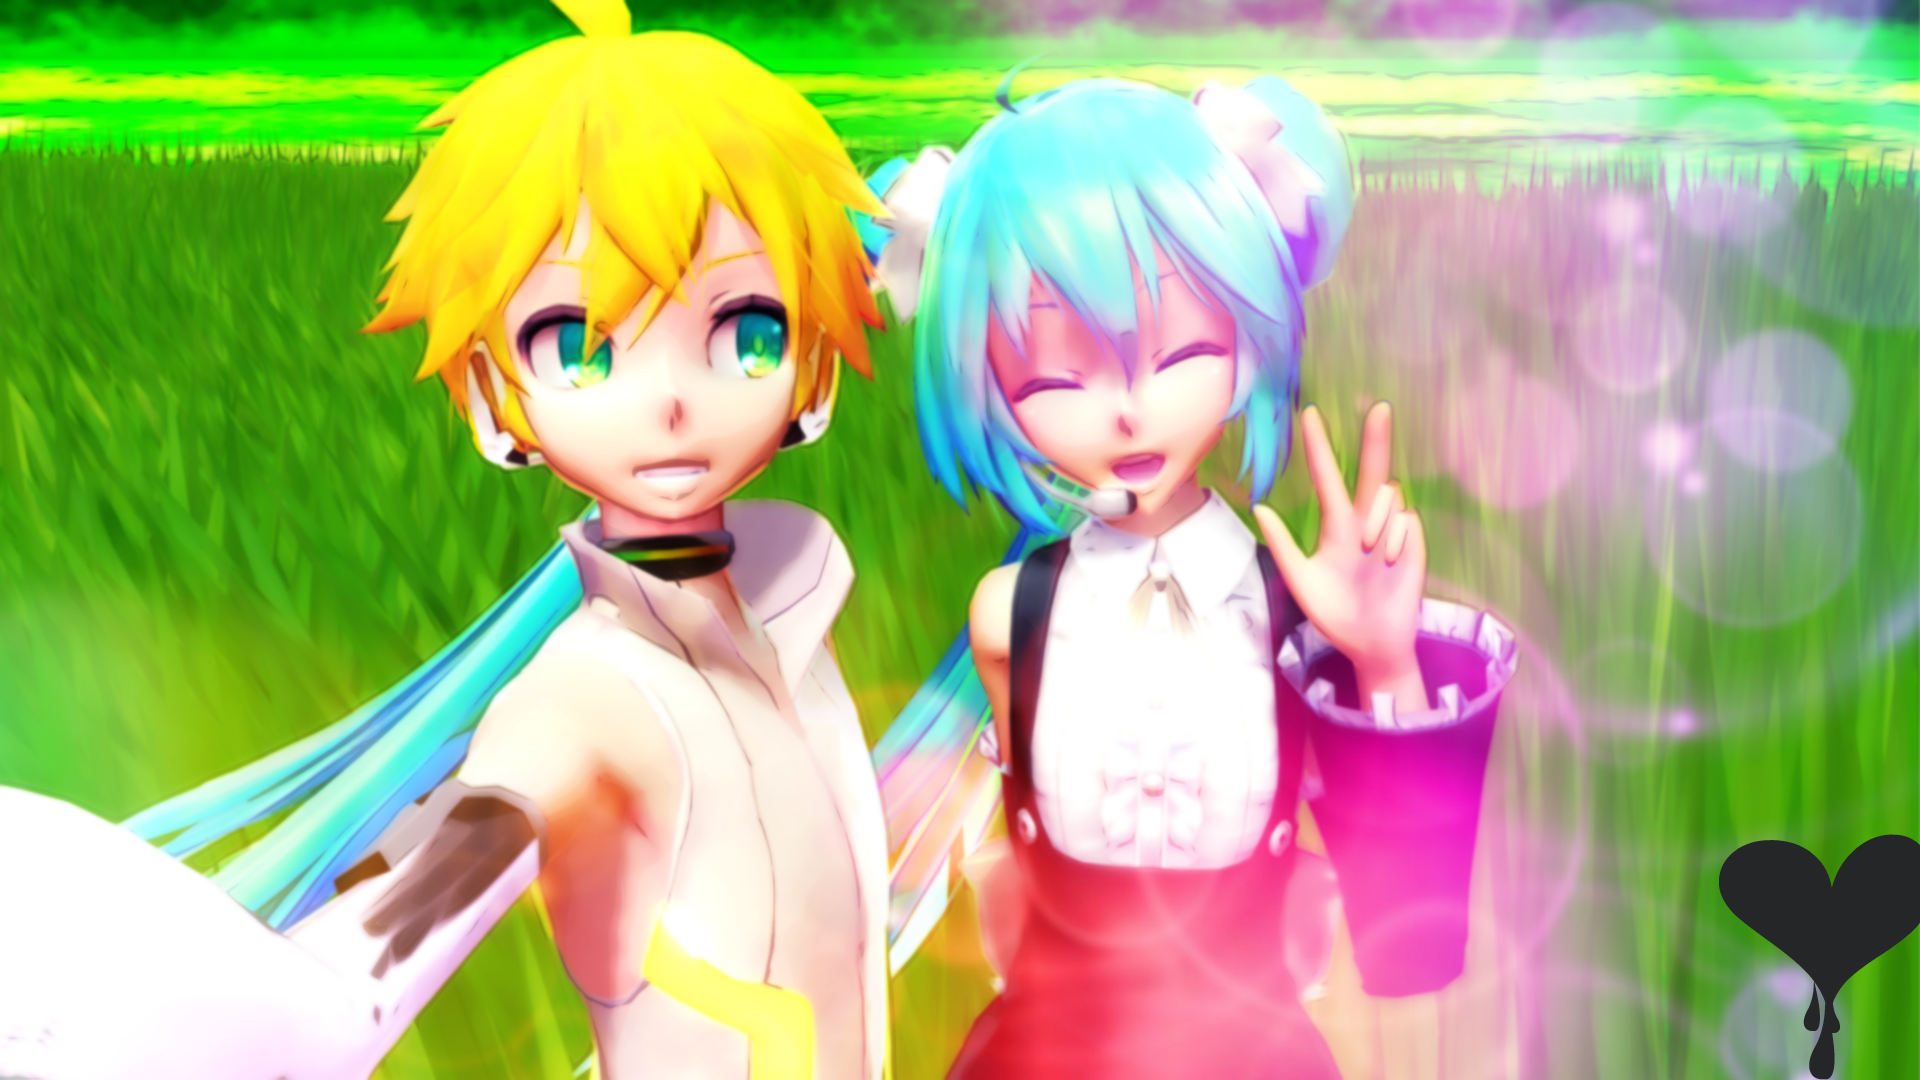 mmd wallpaper 1 - photo #1